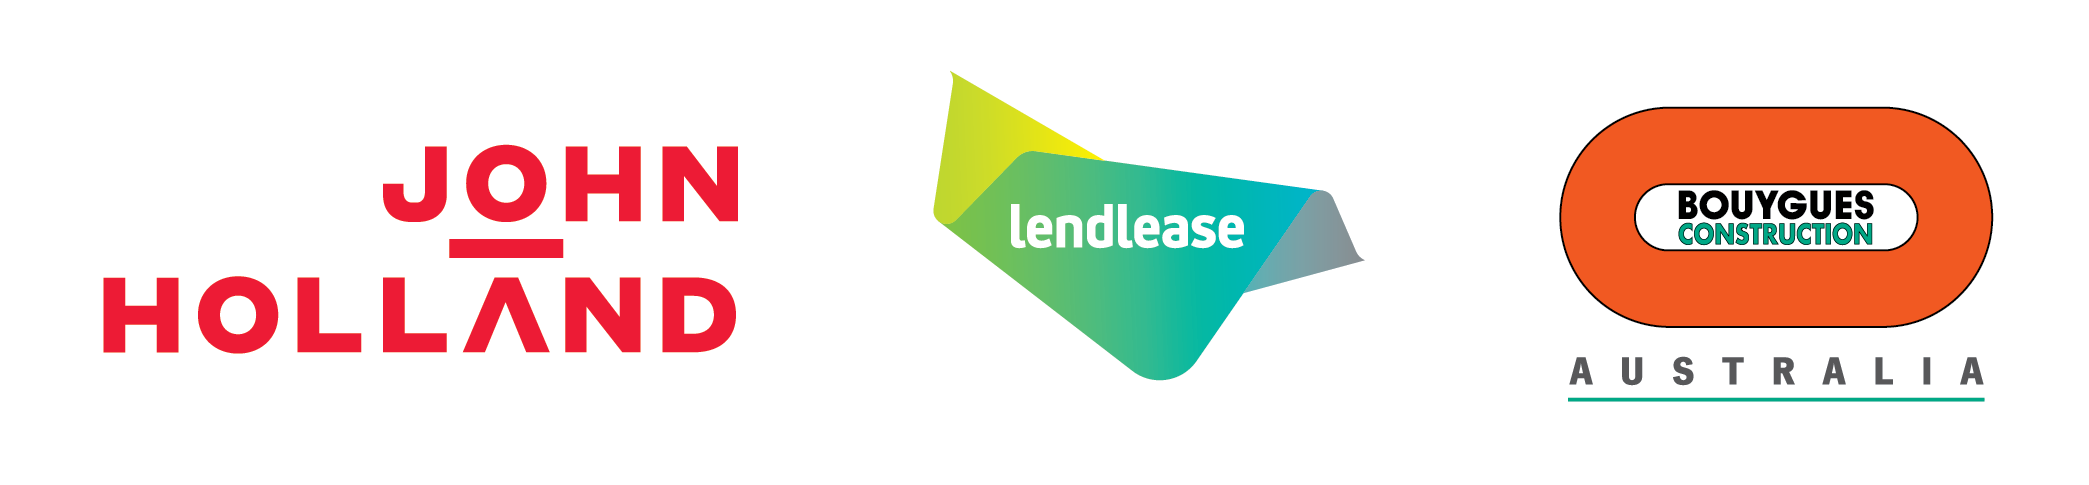 John Holland, Lendlease and Bouygues Construction